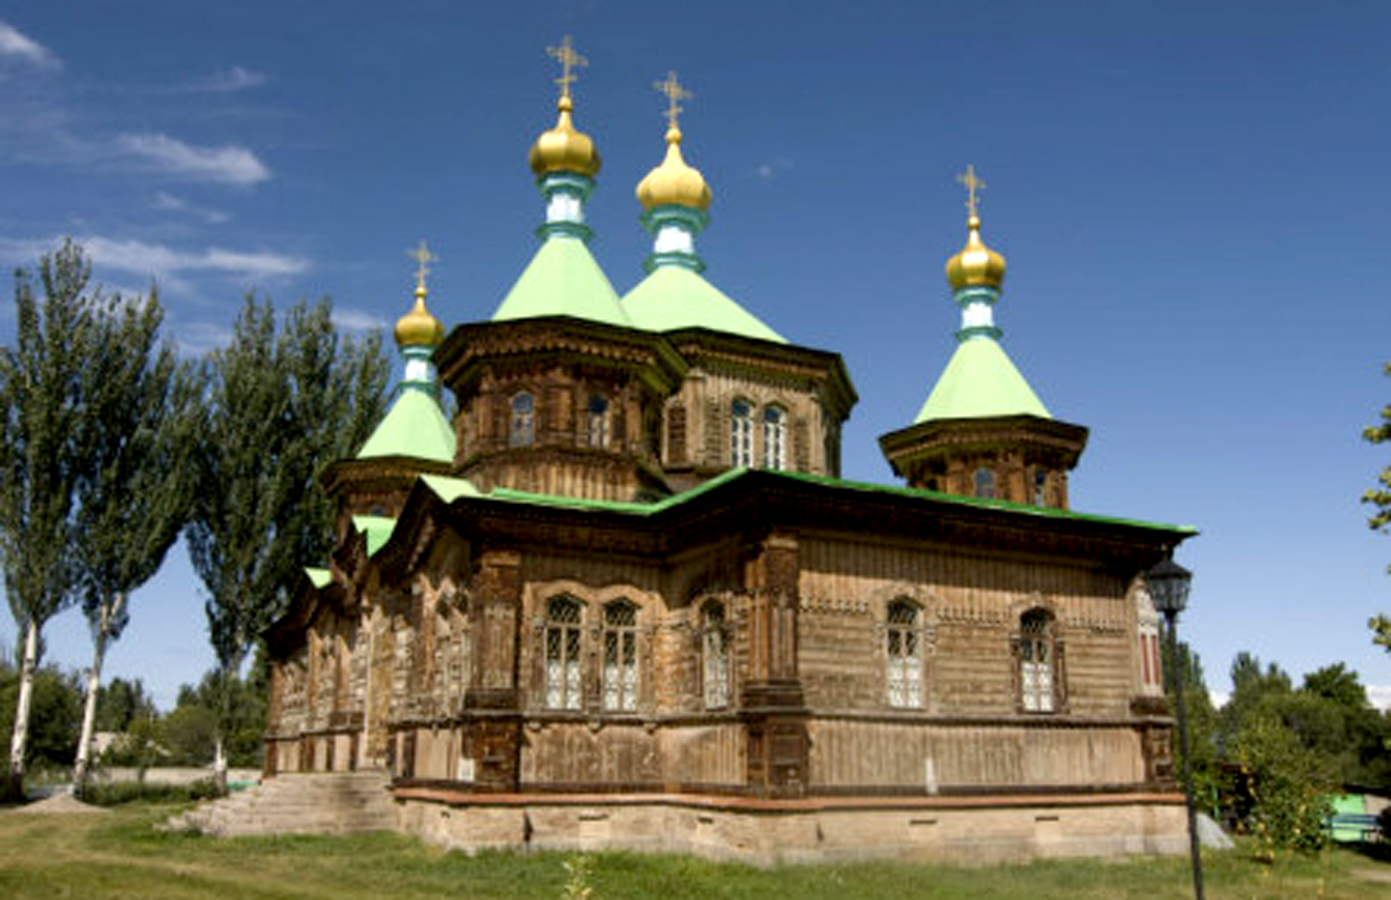 Faith is costly in Central Asia